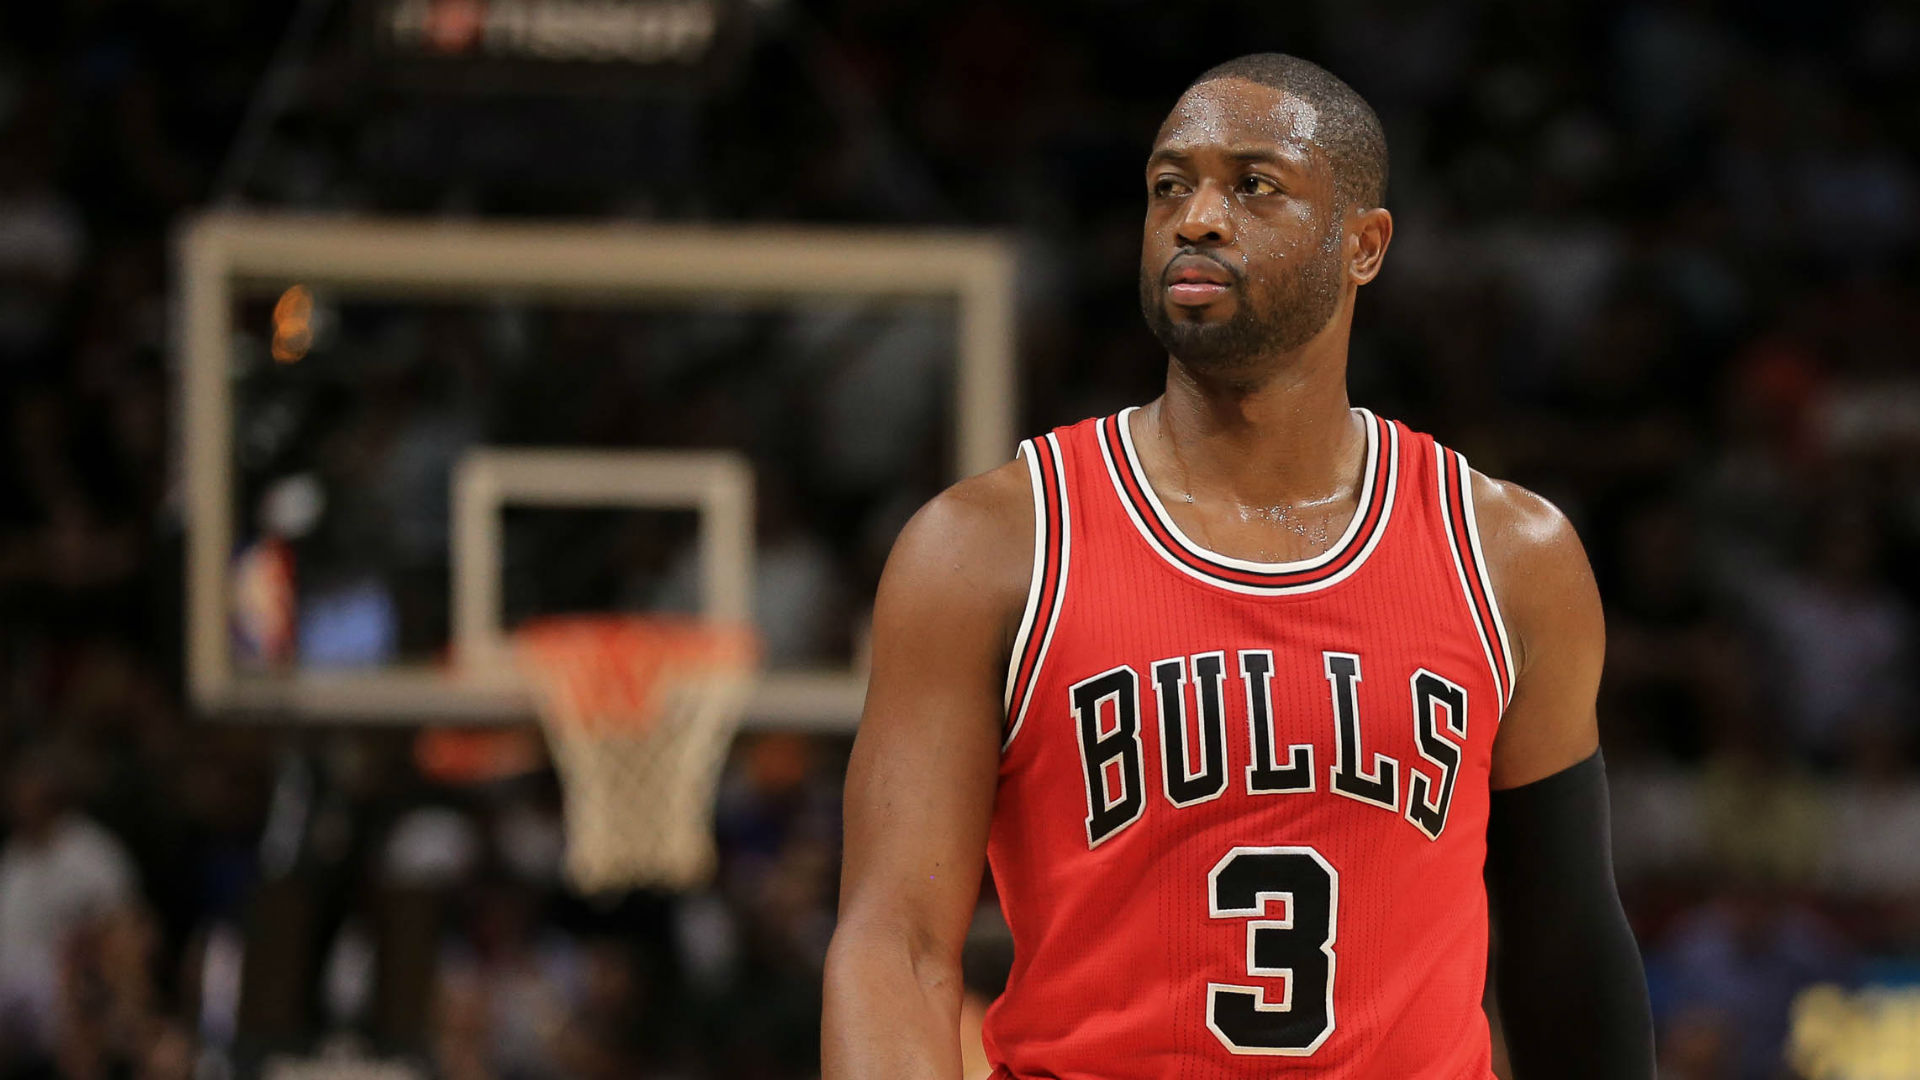 Bulls' Dwyane Wade makes great point about NBA's referee hypocrisy